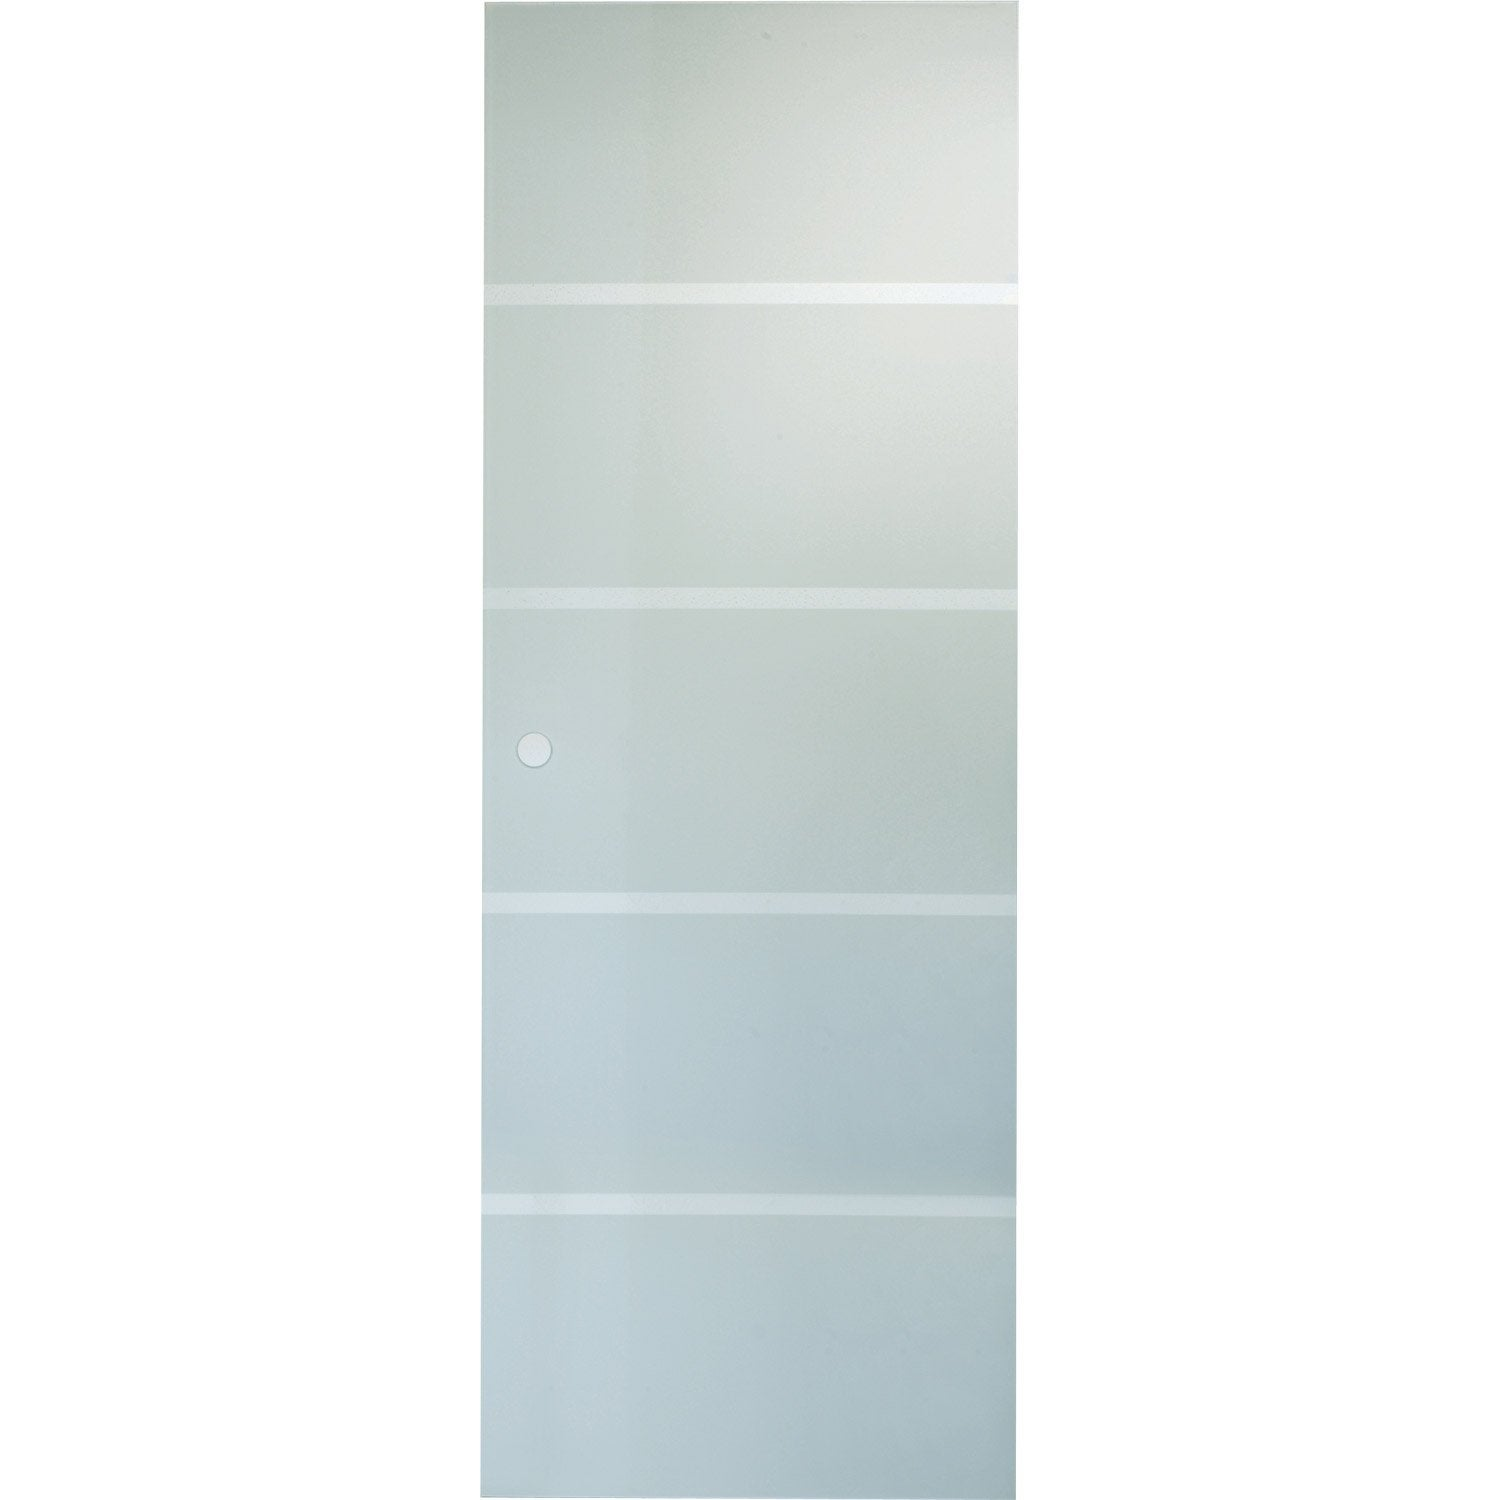 Porte coulissante verre tremp miami artens 204 x 83 cm for Porte vitree 73